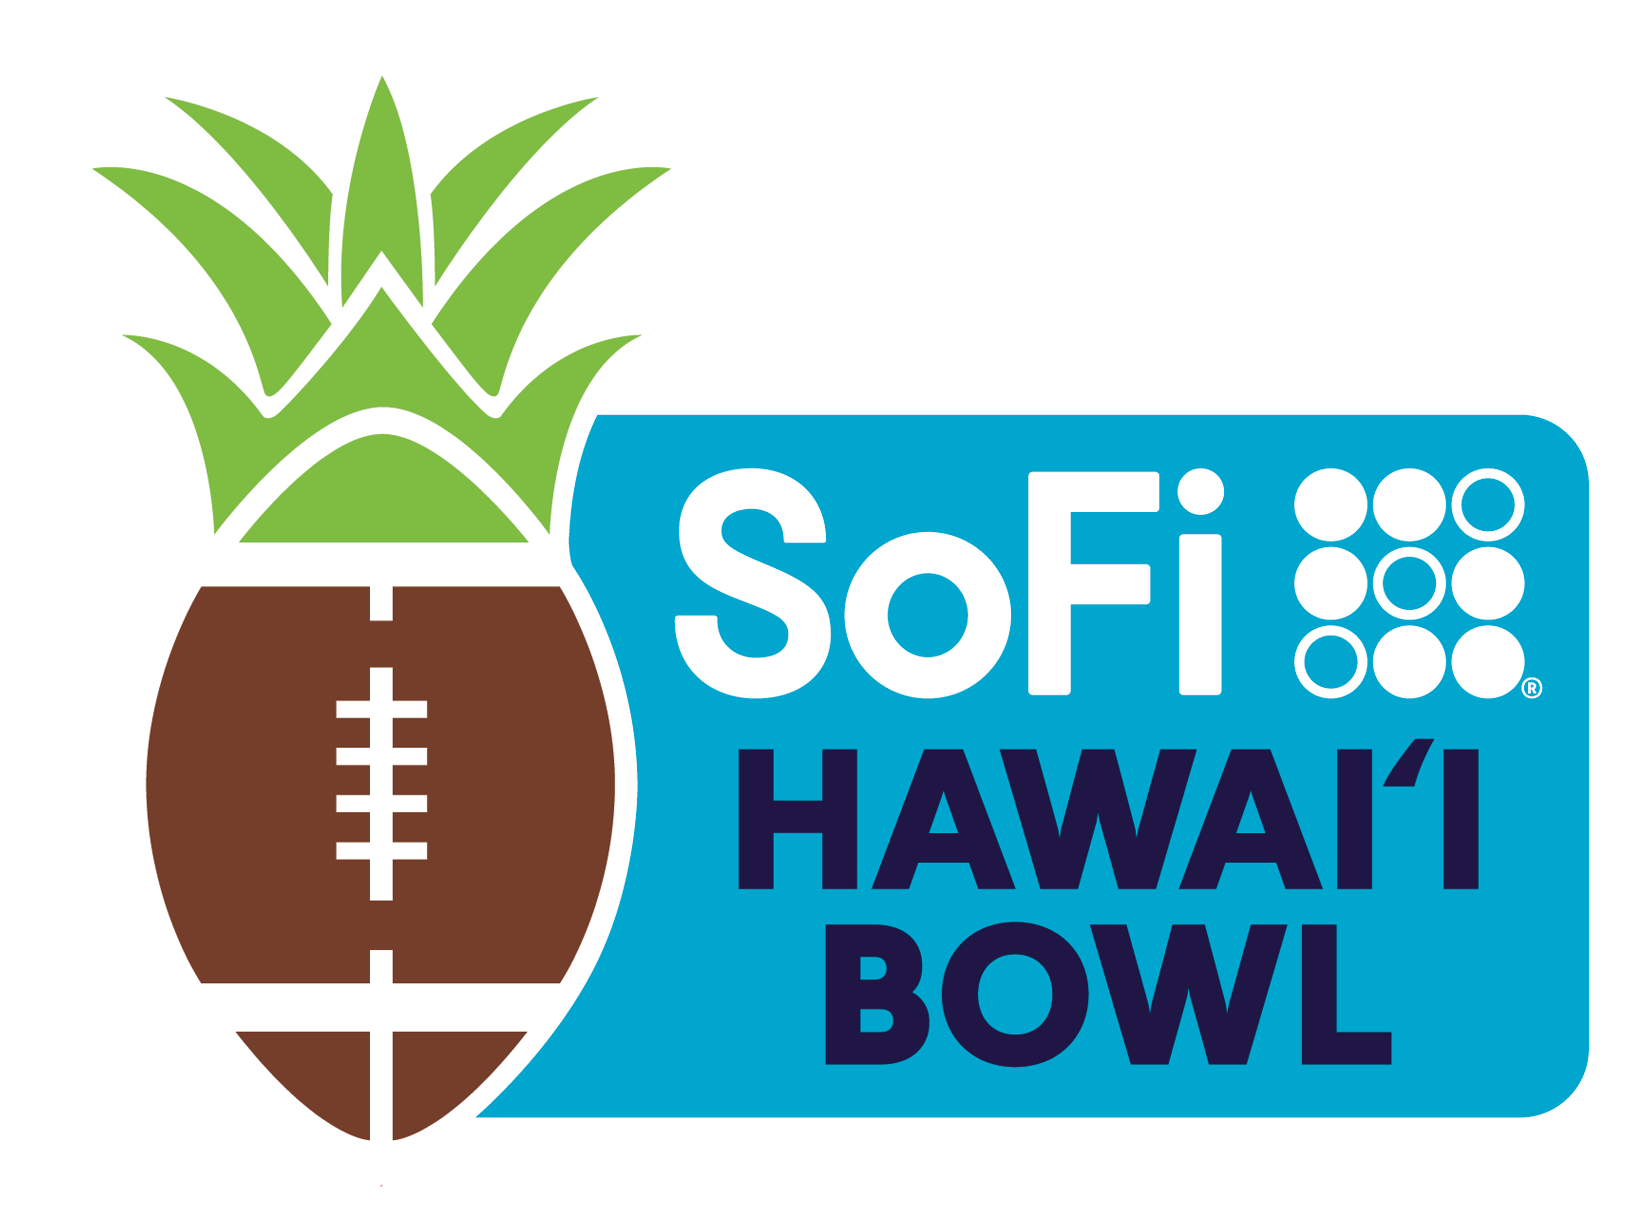 SoFi Hawaii Bowl